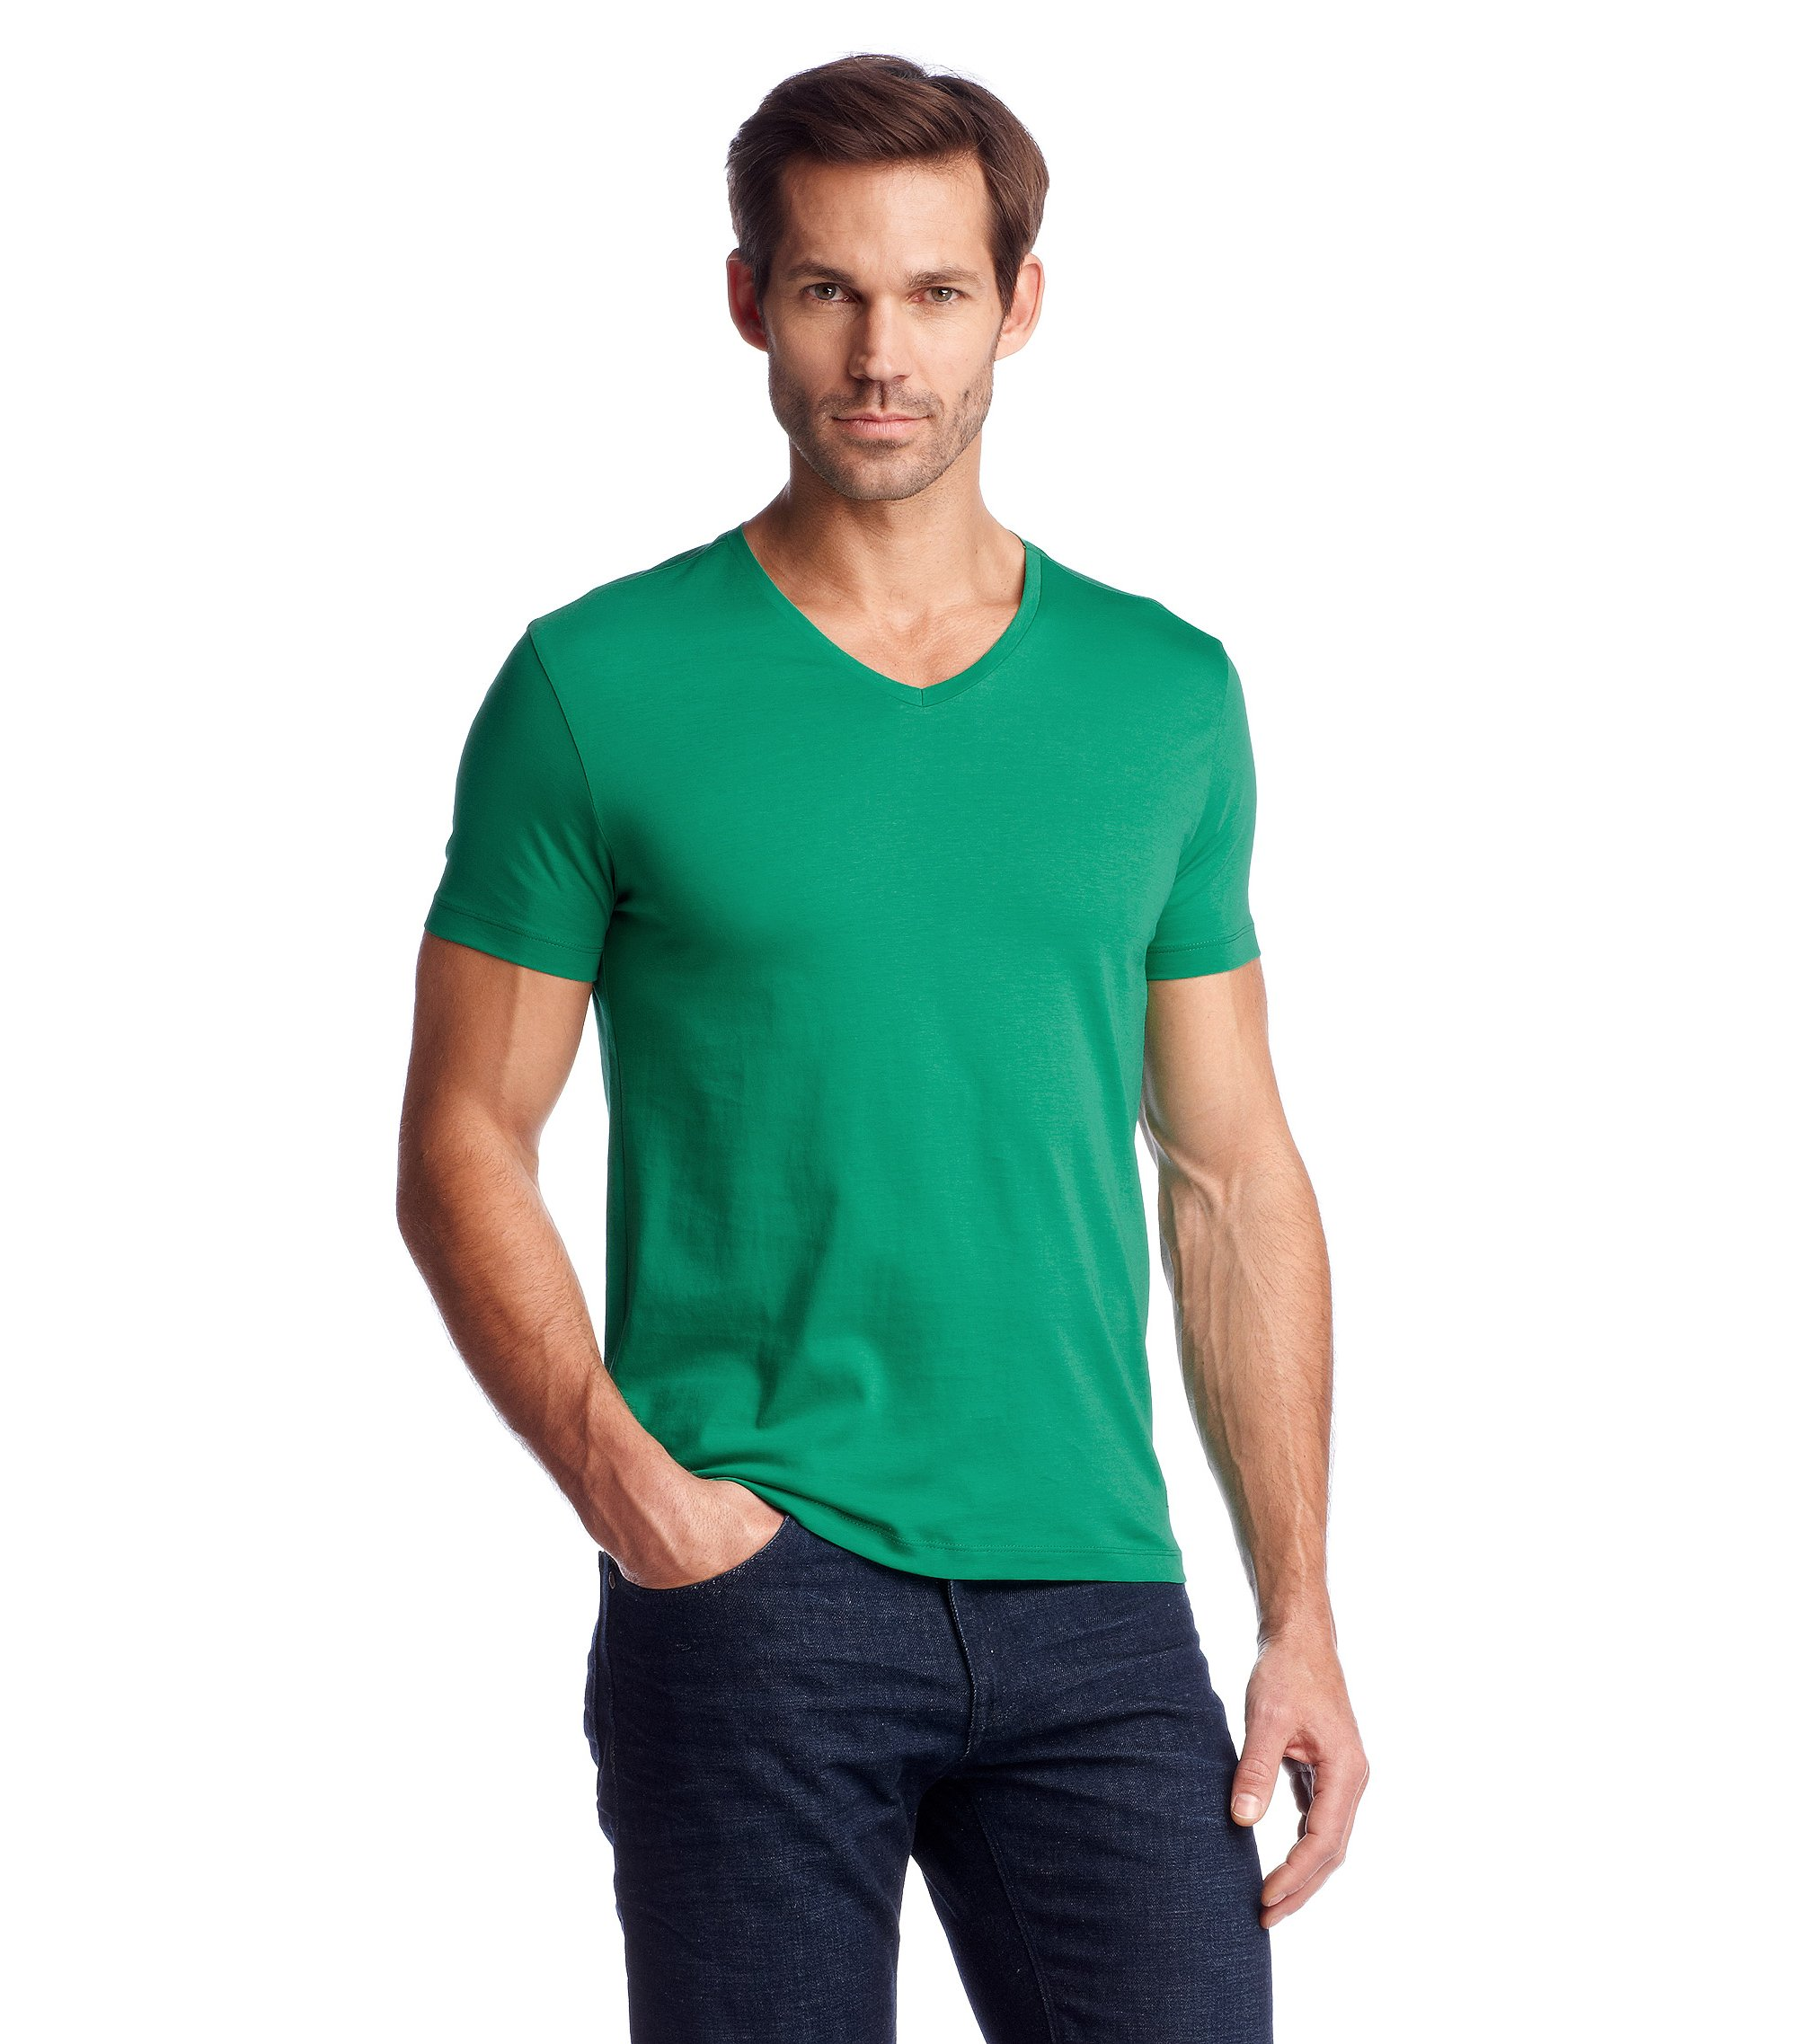 T-shirt 'Canistro 80 Modern Essential', Green